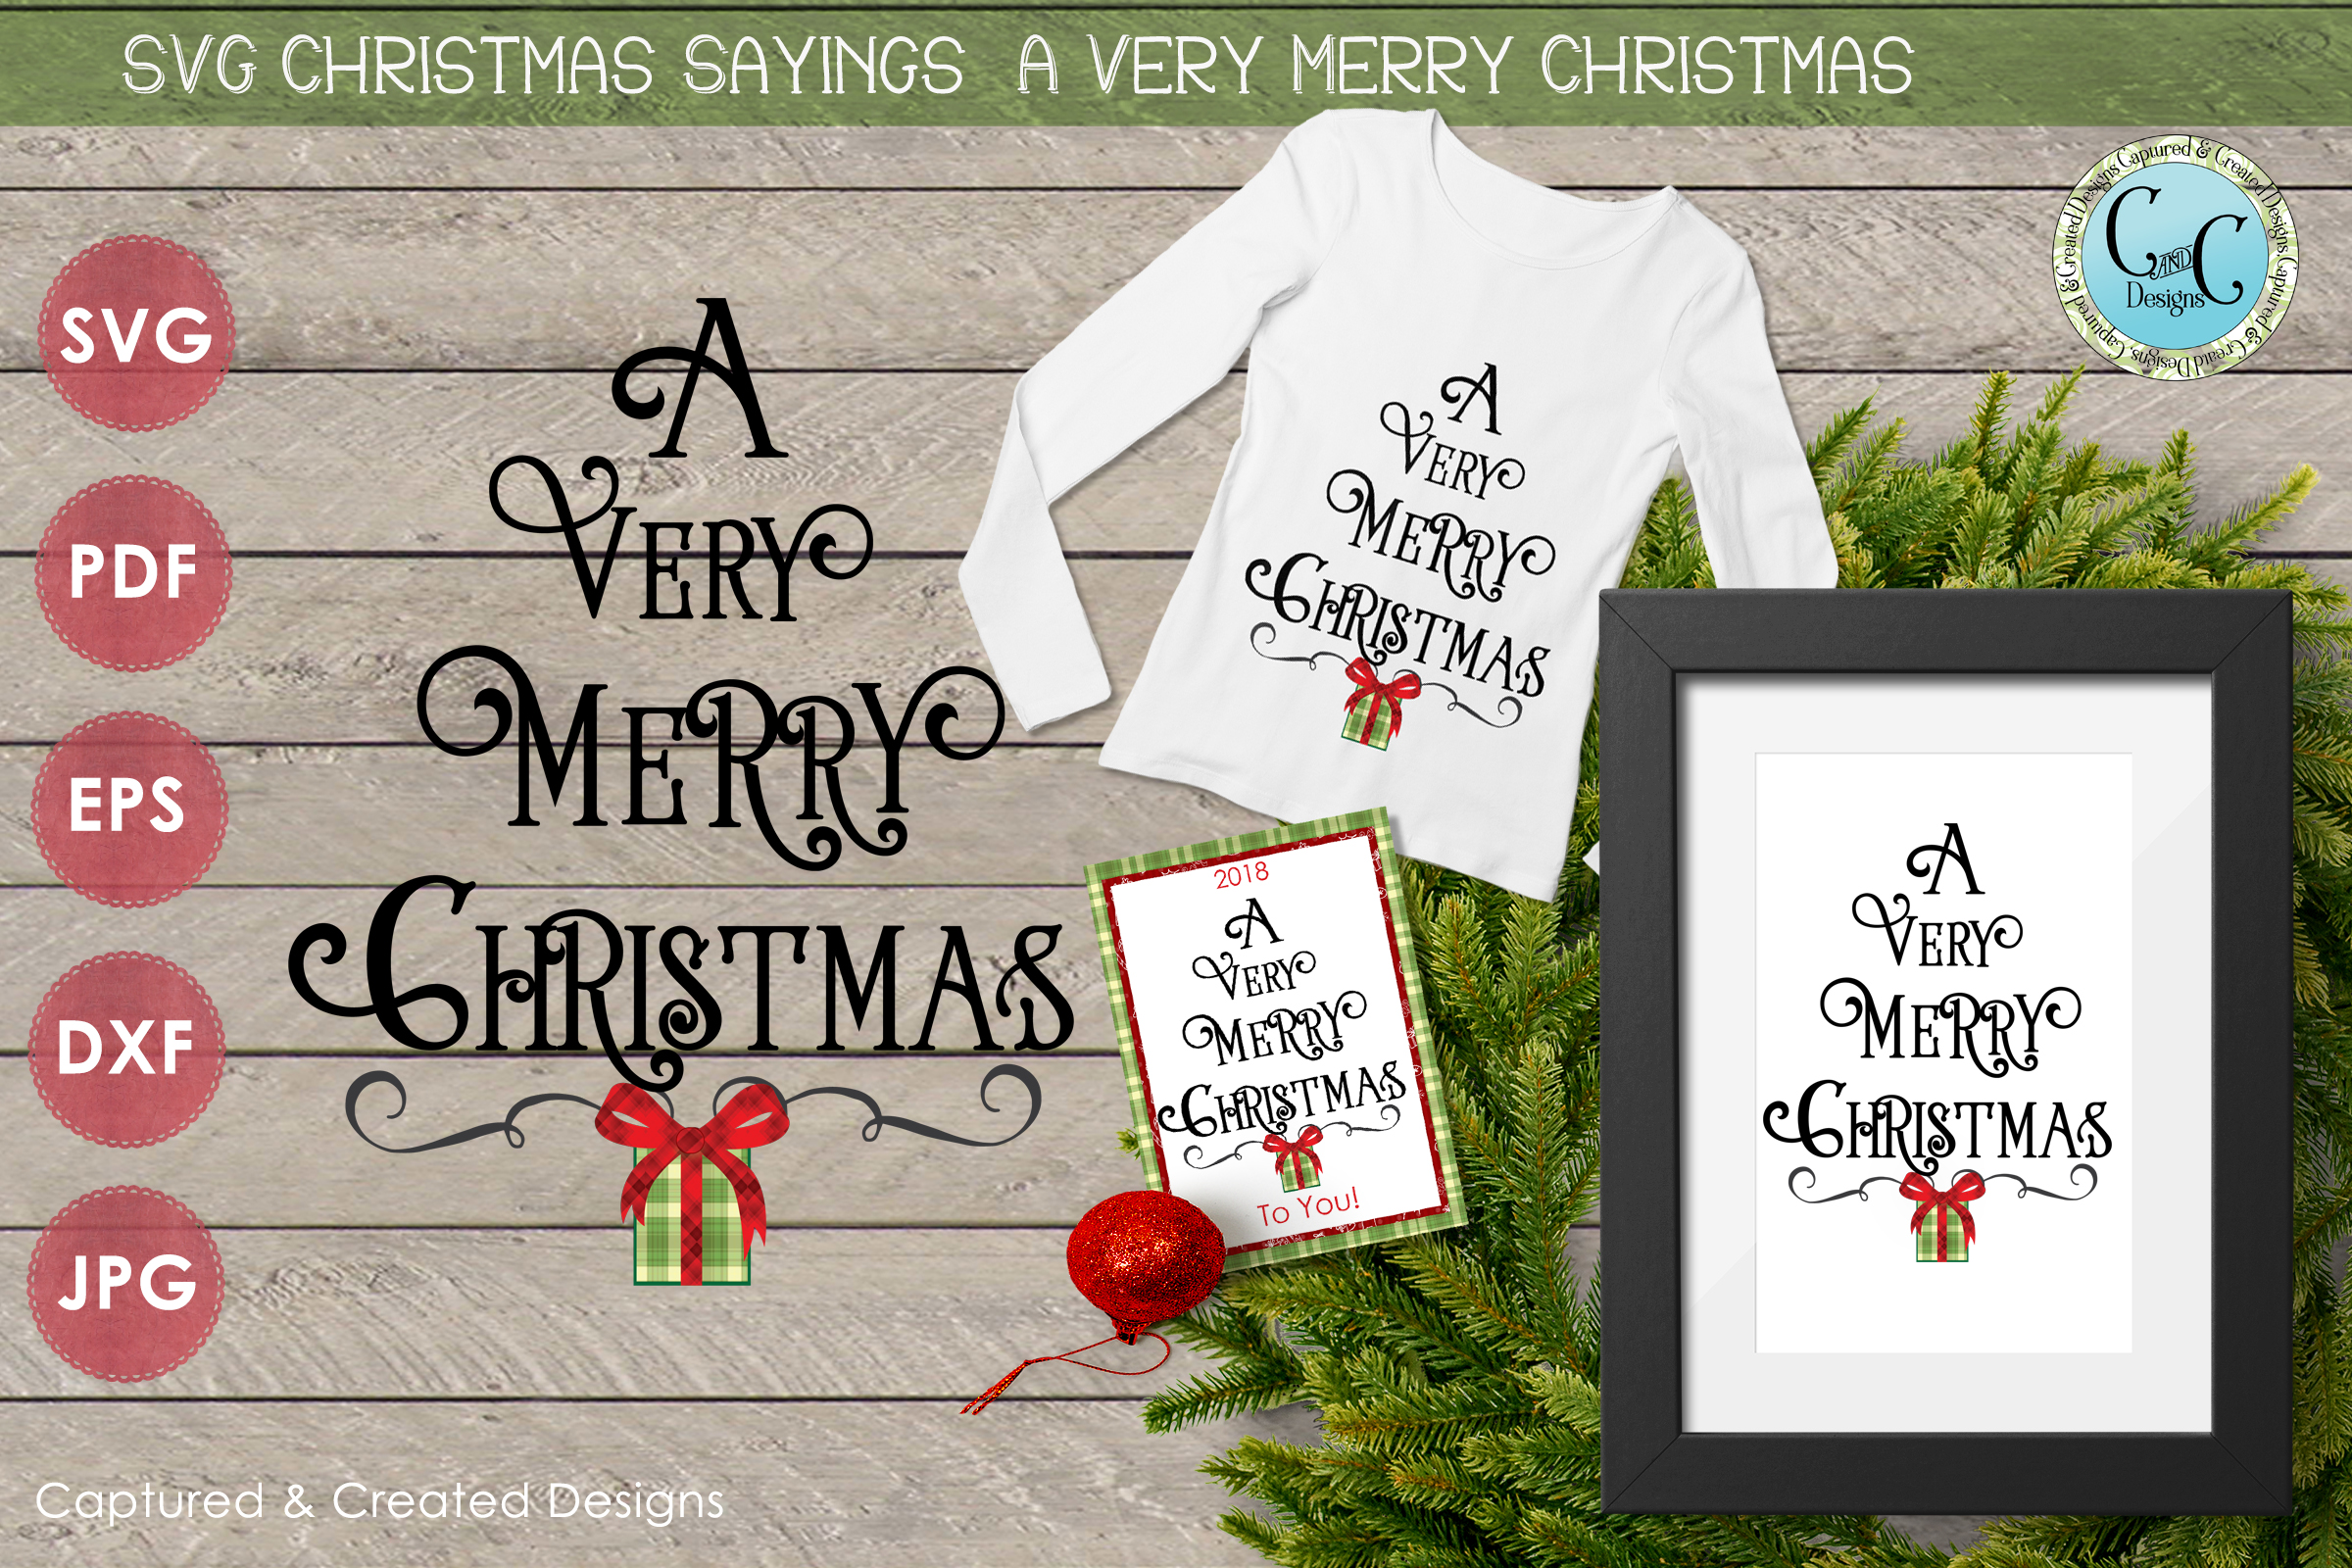 SVG Christmas Sayings- A Very Merry Christmas Tree Shape example image 1